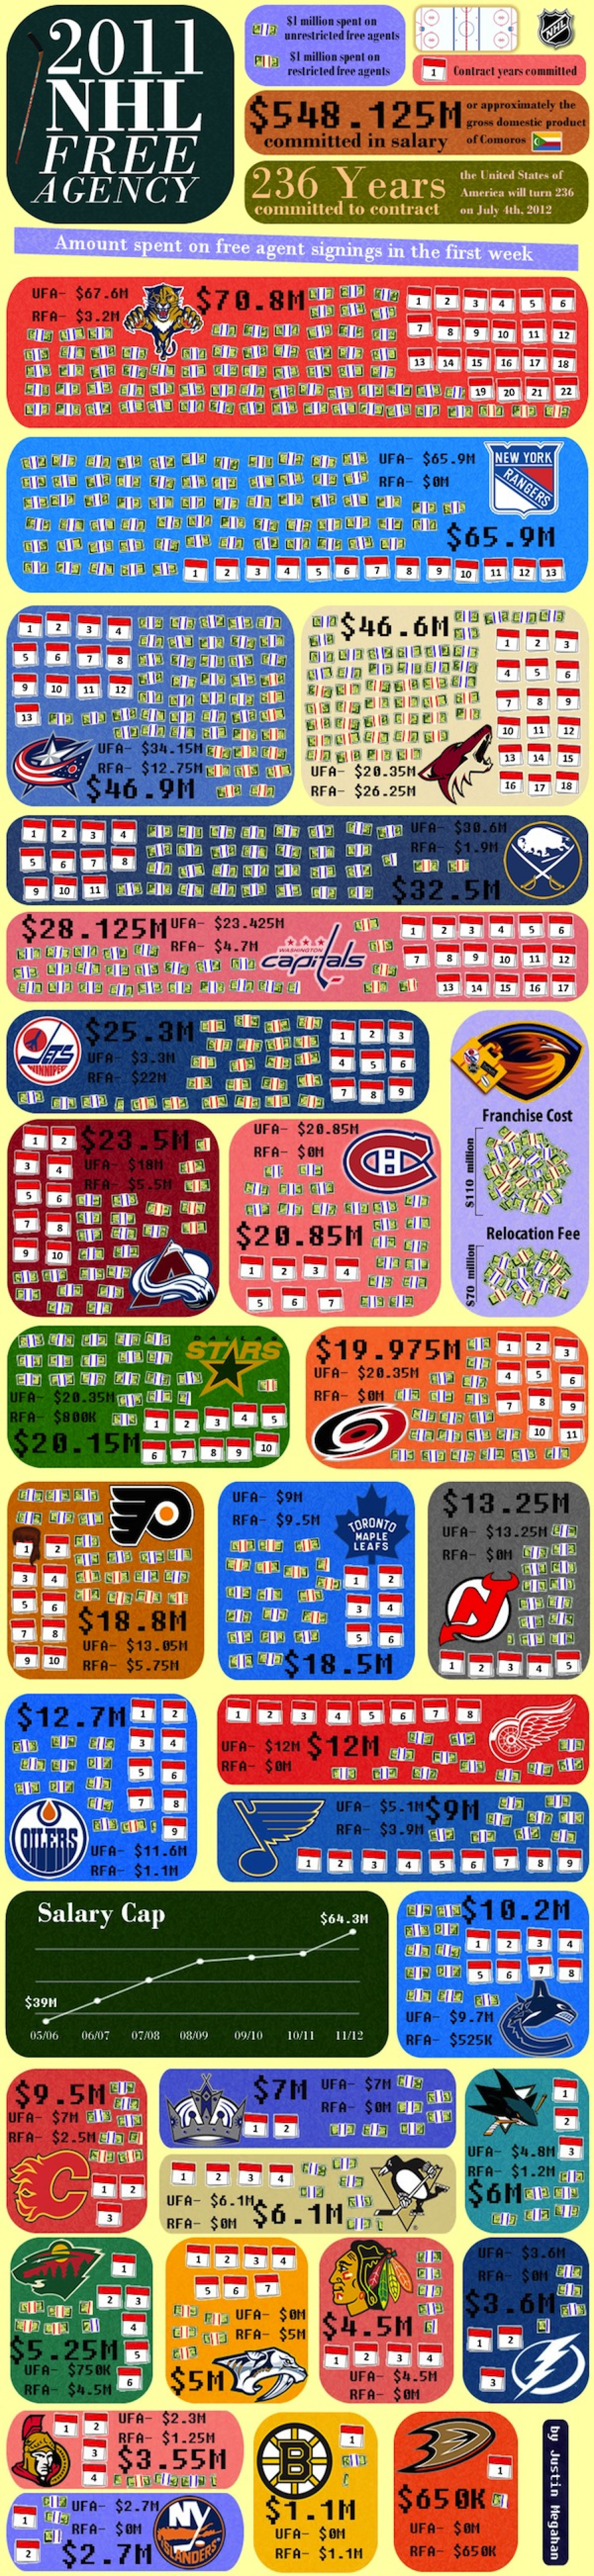 2011 NHL Free Agency Infographic